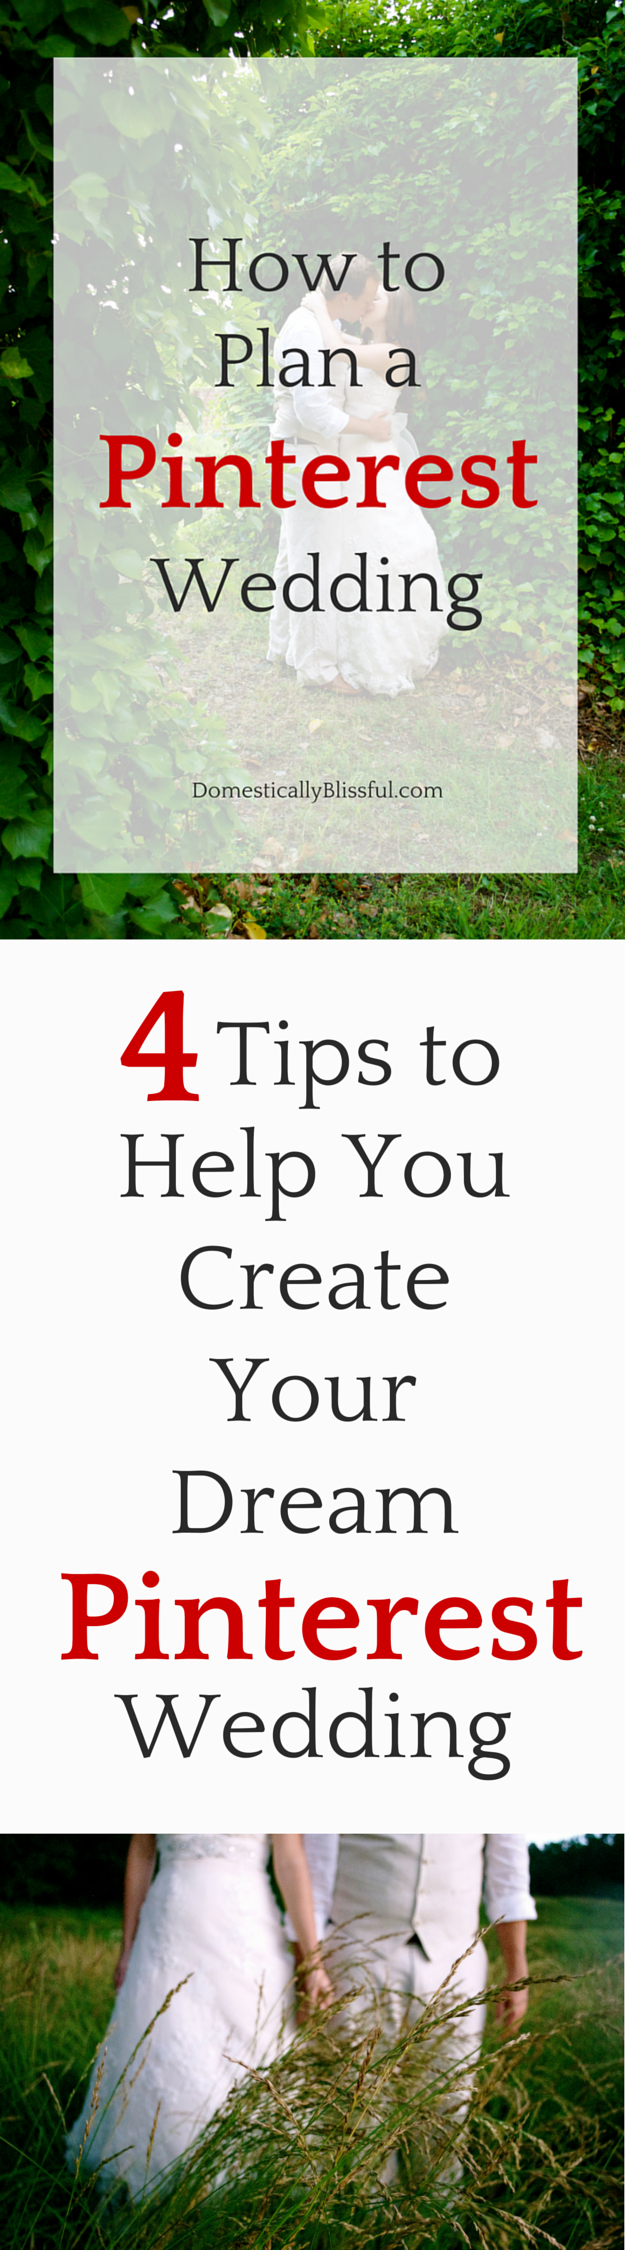 4 tips to help you create your dream Pinterest wedding